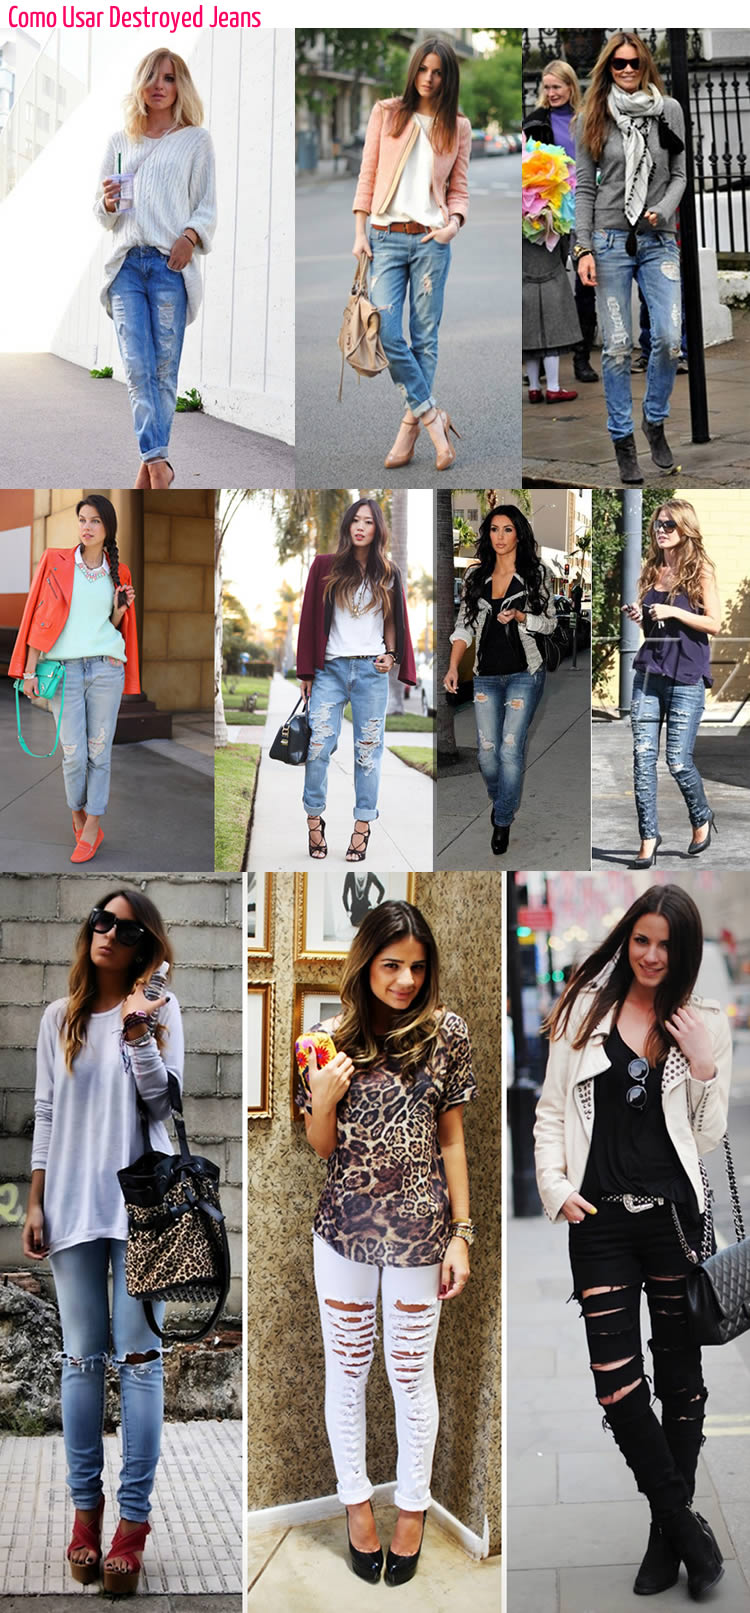 como-usar-jeans-rasgado-destroyed-jeans-trend-looks-inspiracao-ripped-jeans